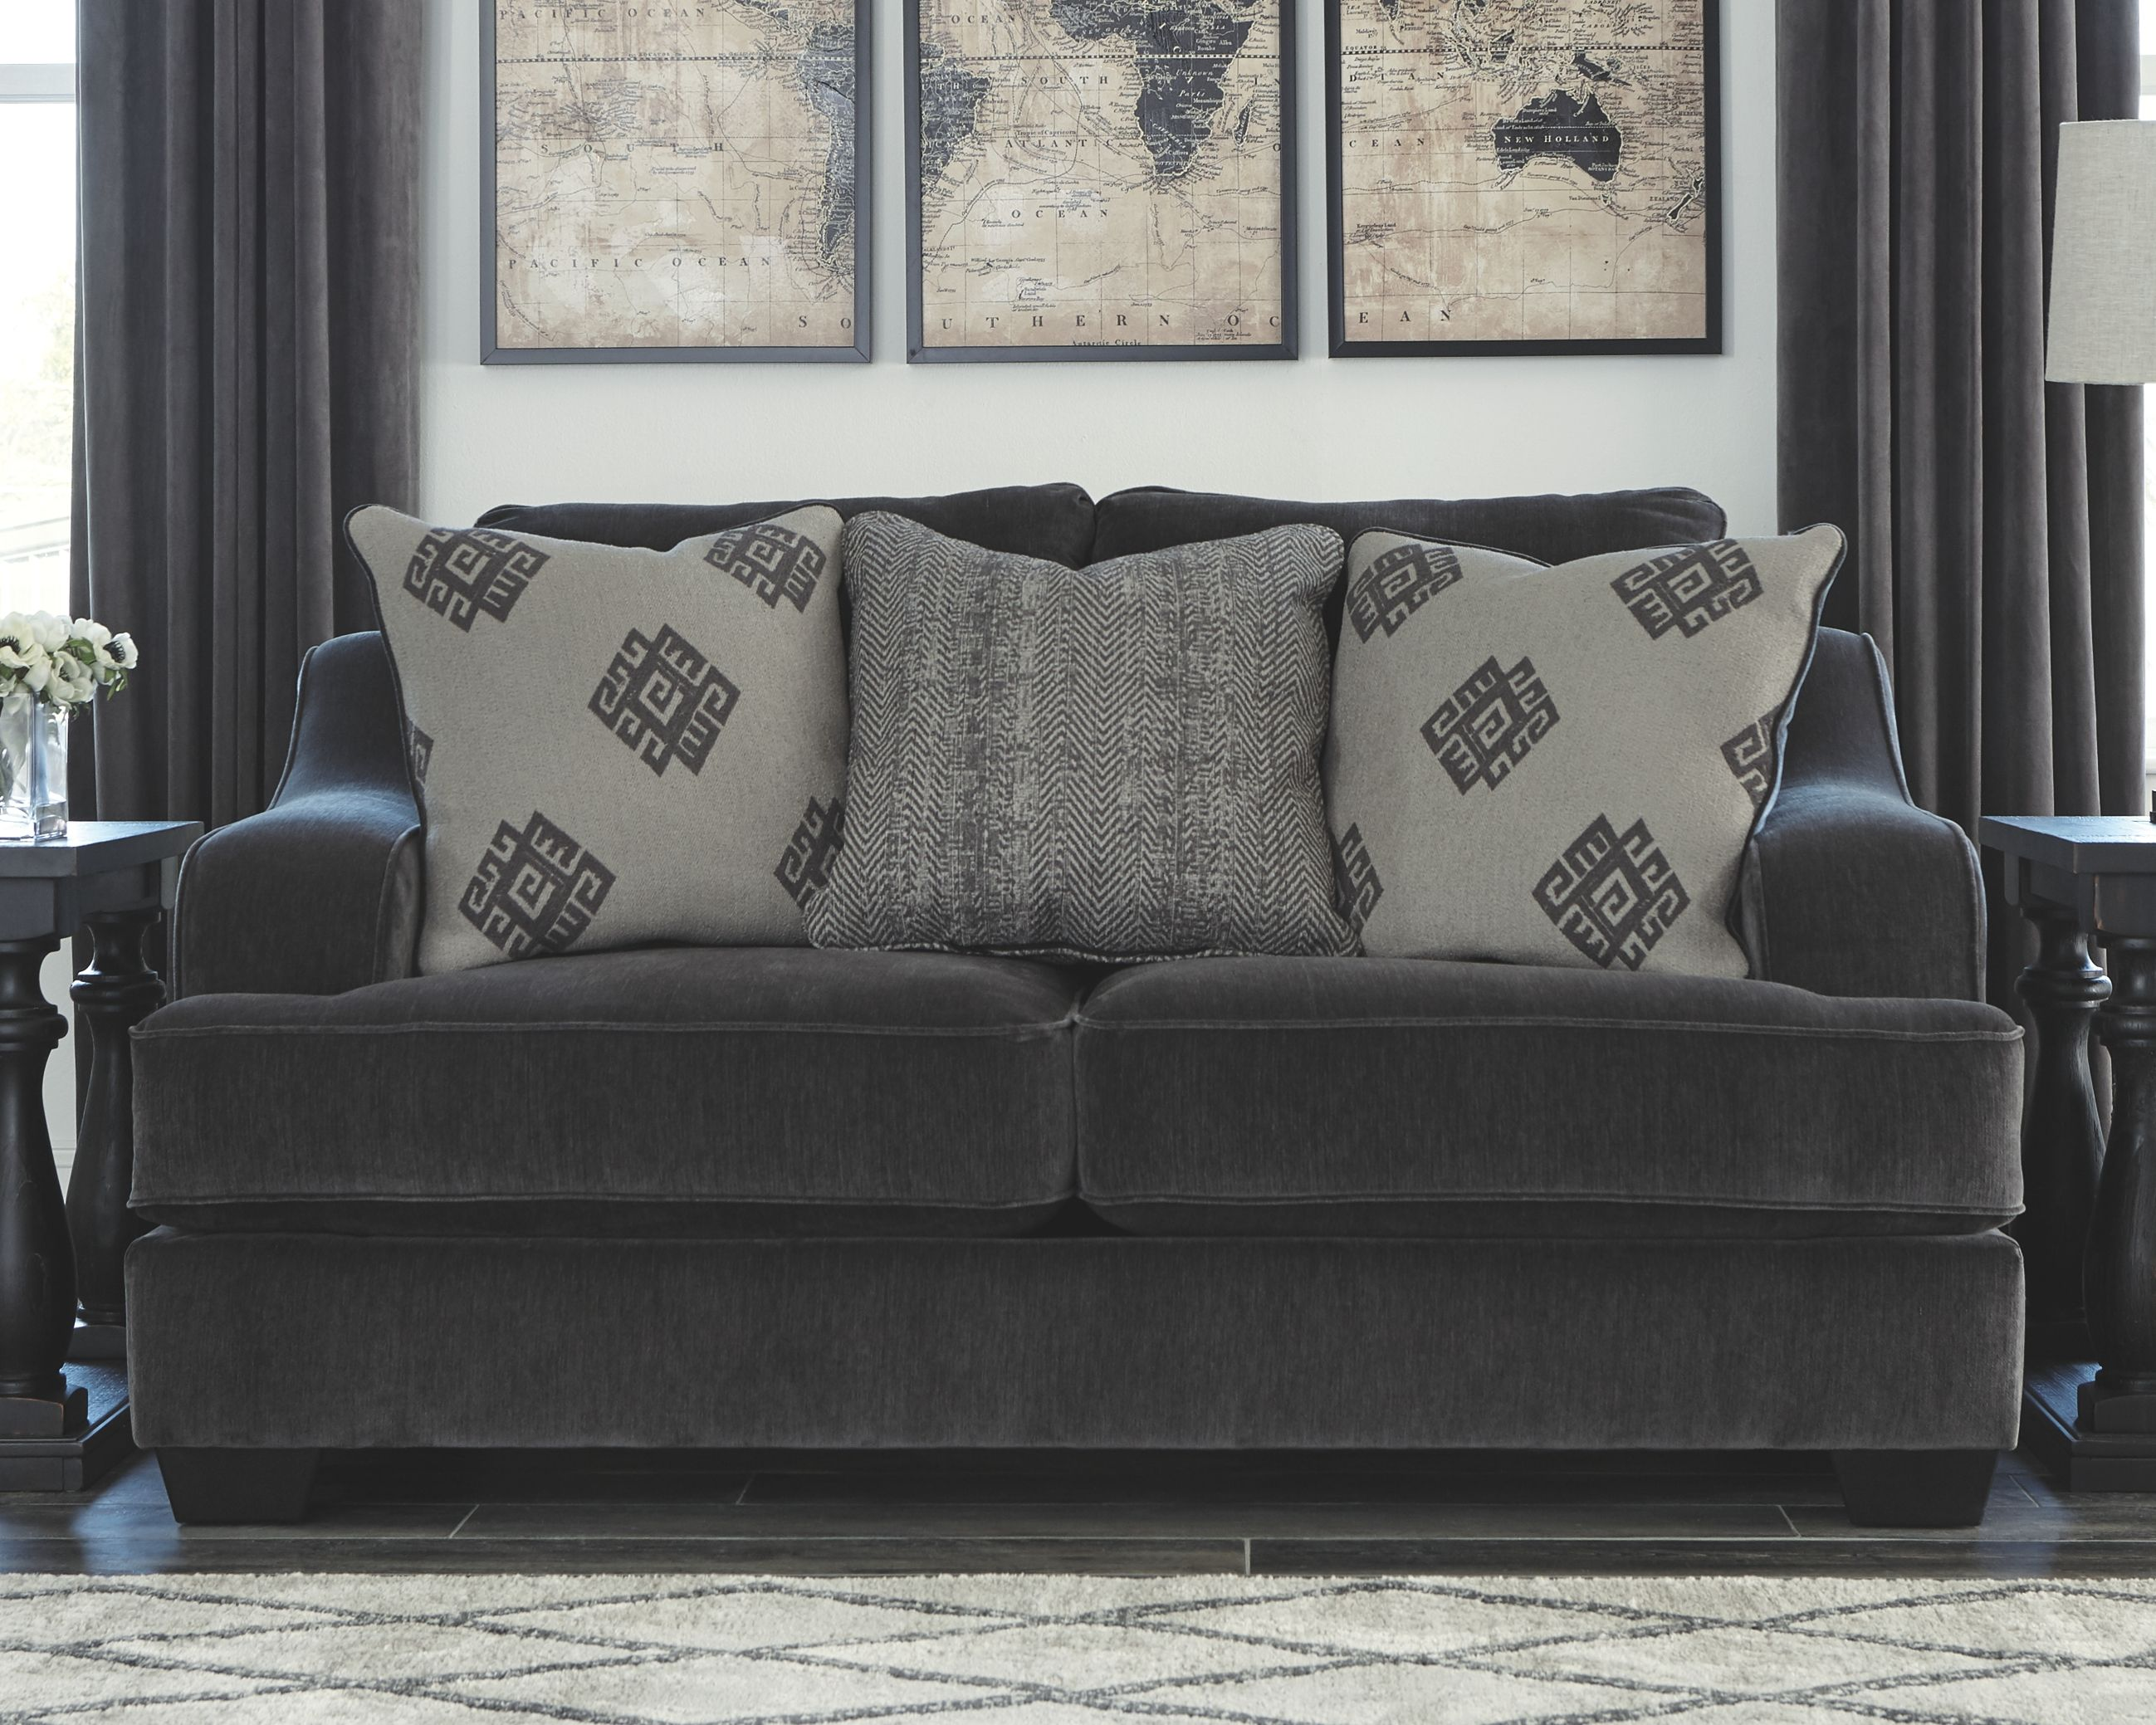 Sofology Quebec Corvara Loveseat Ink Products En 2019 Furniture Grey Couches